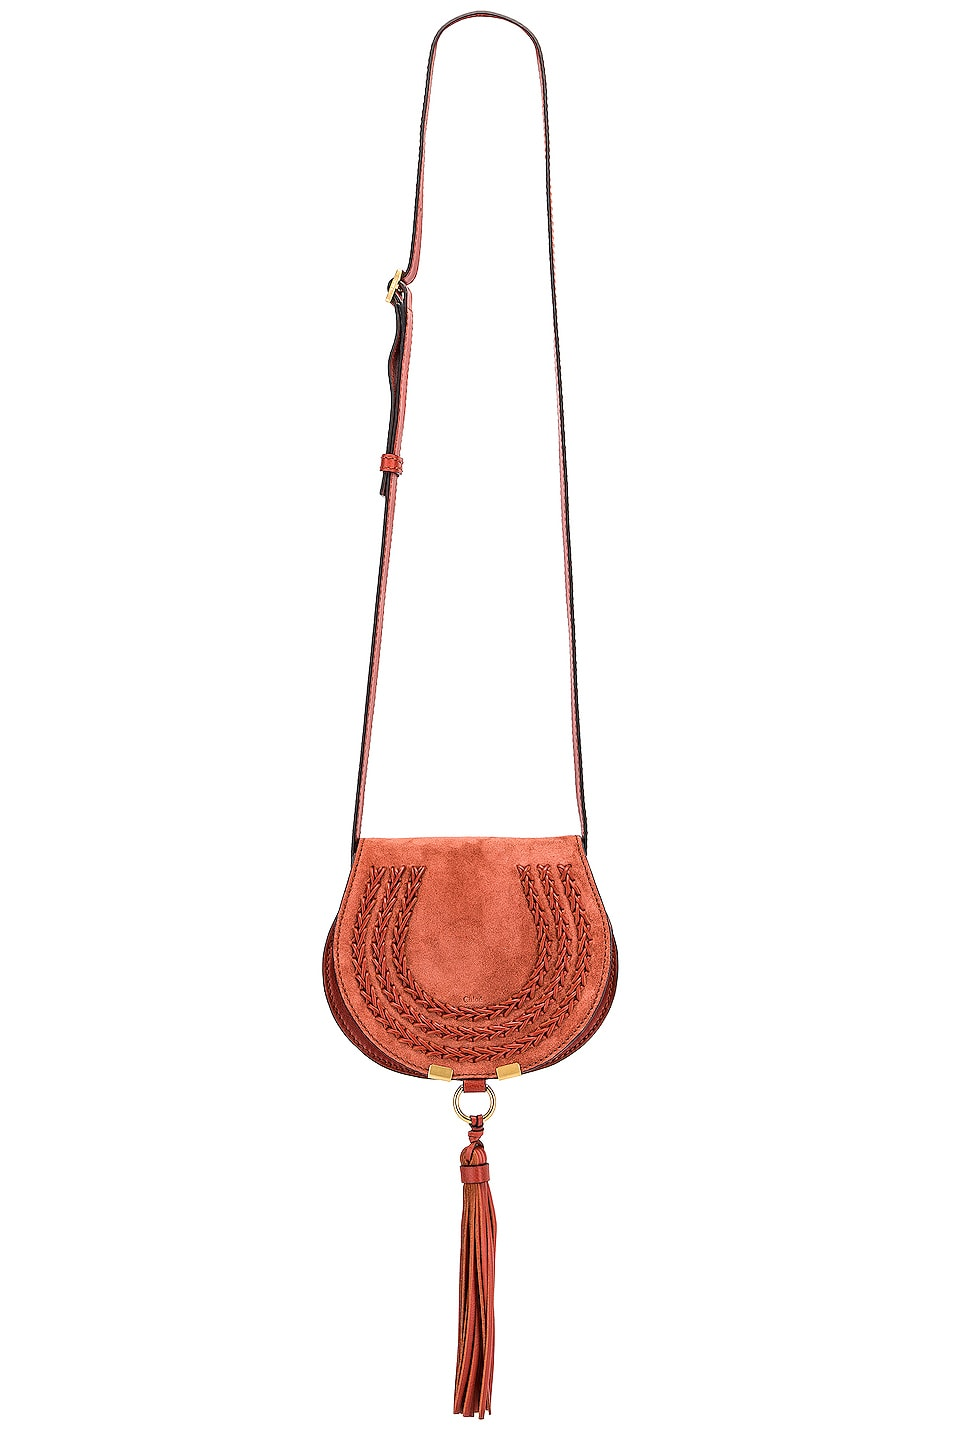 Image 6 of Chloe Small Leather Braid Marcie Satchel in Terracotta Red